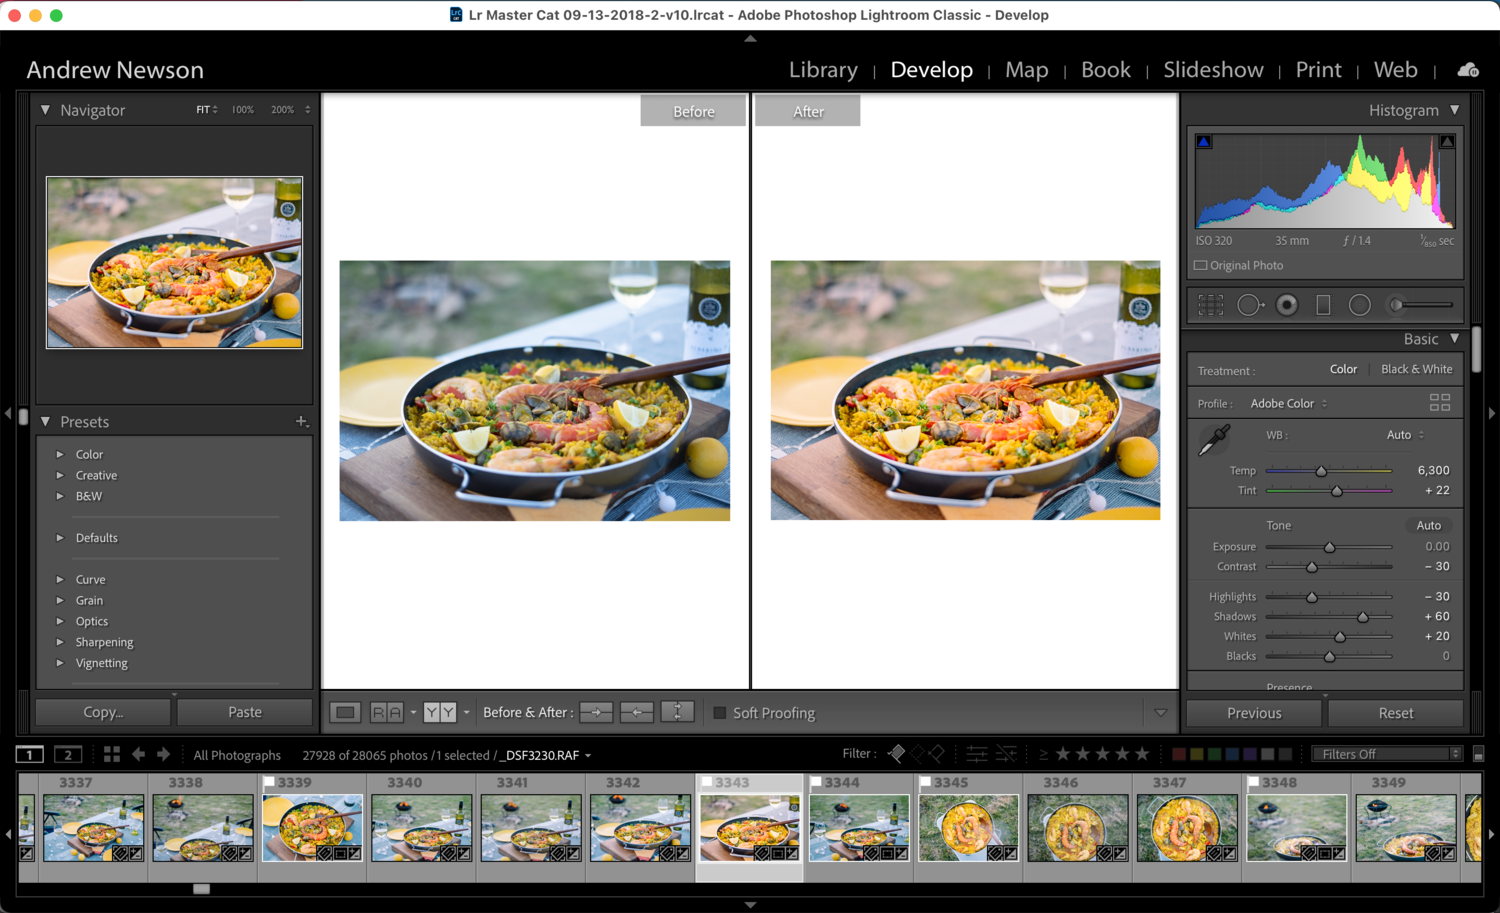 1-2-1 Lightroom Training — Andrew Newson Photography Courses